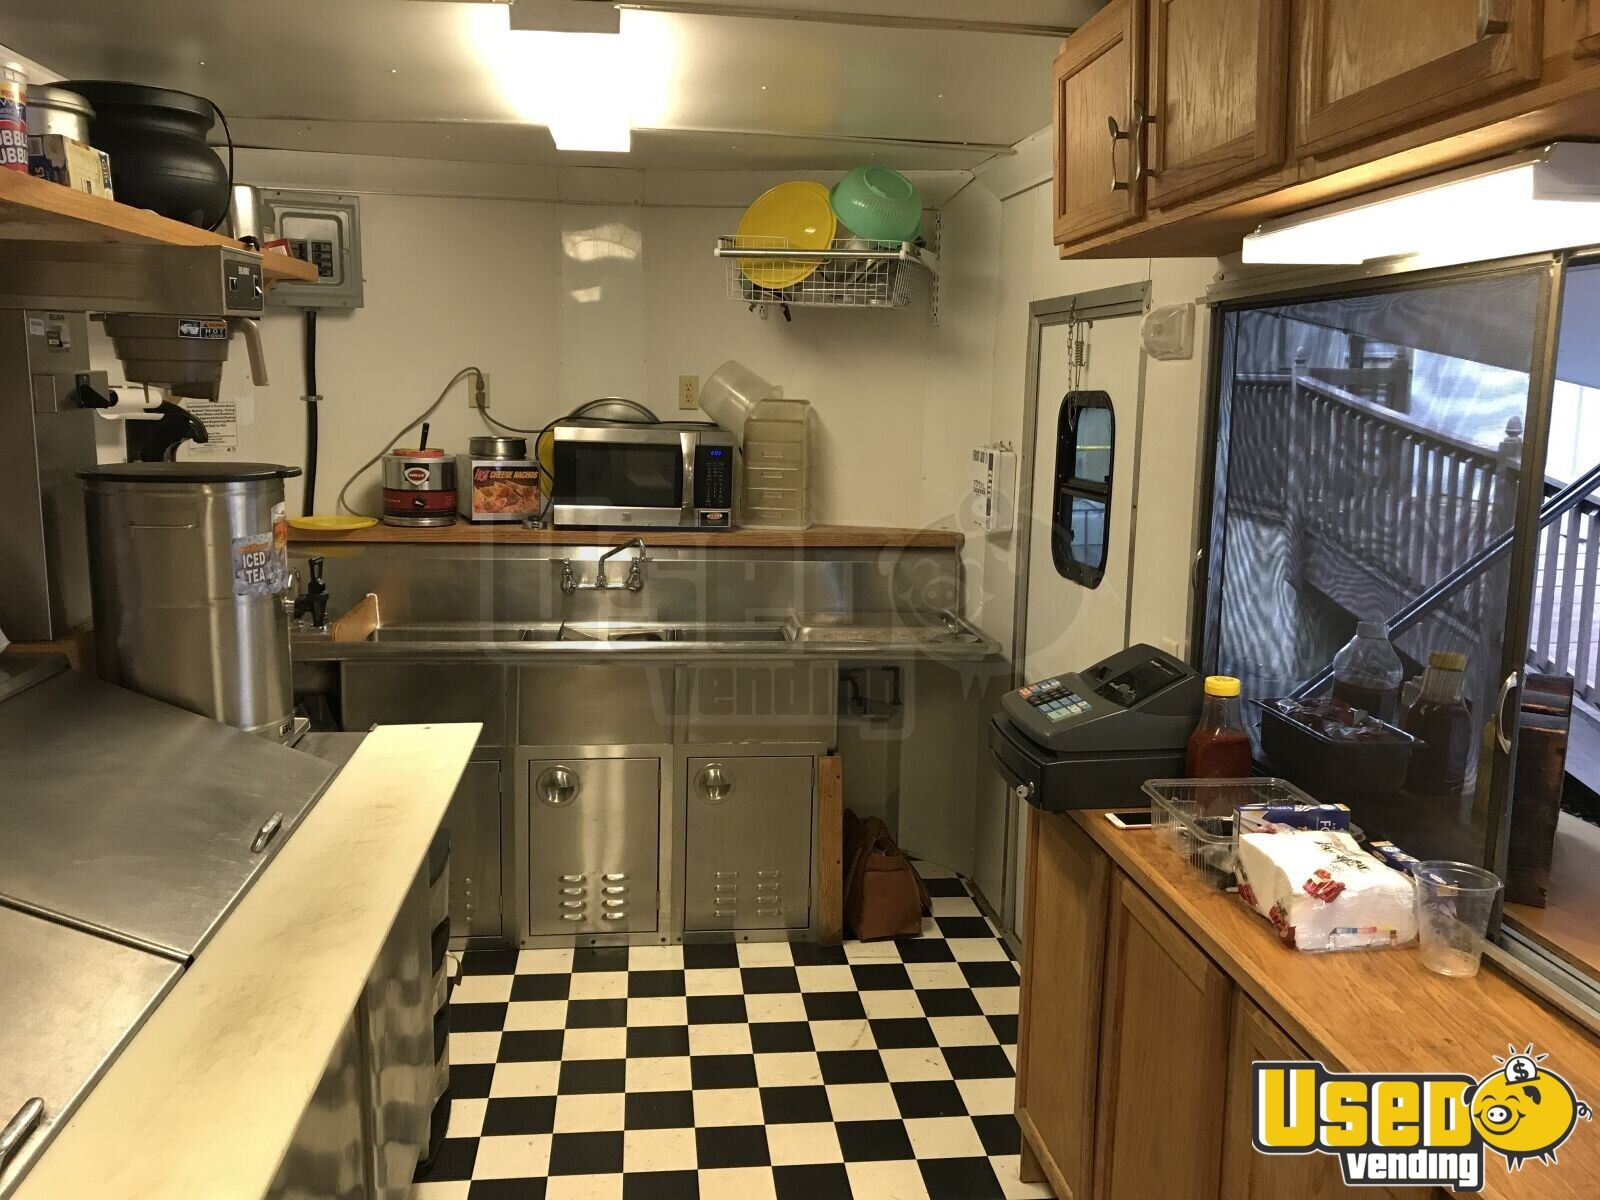 2013 Colonial Custom Built Barbecue Food Trailer Awning North Carolina for Sale - 7